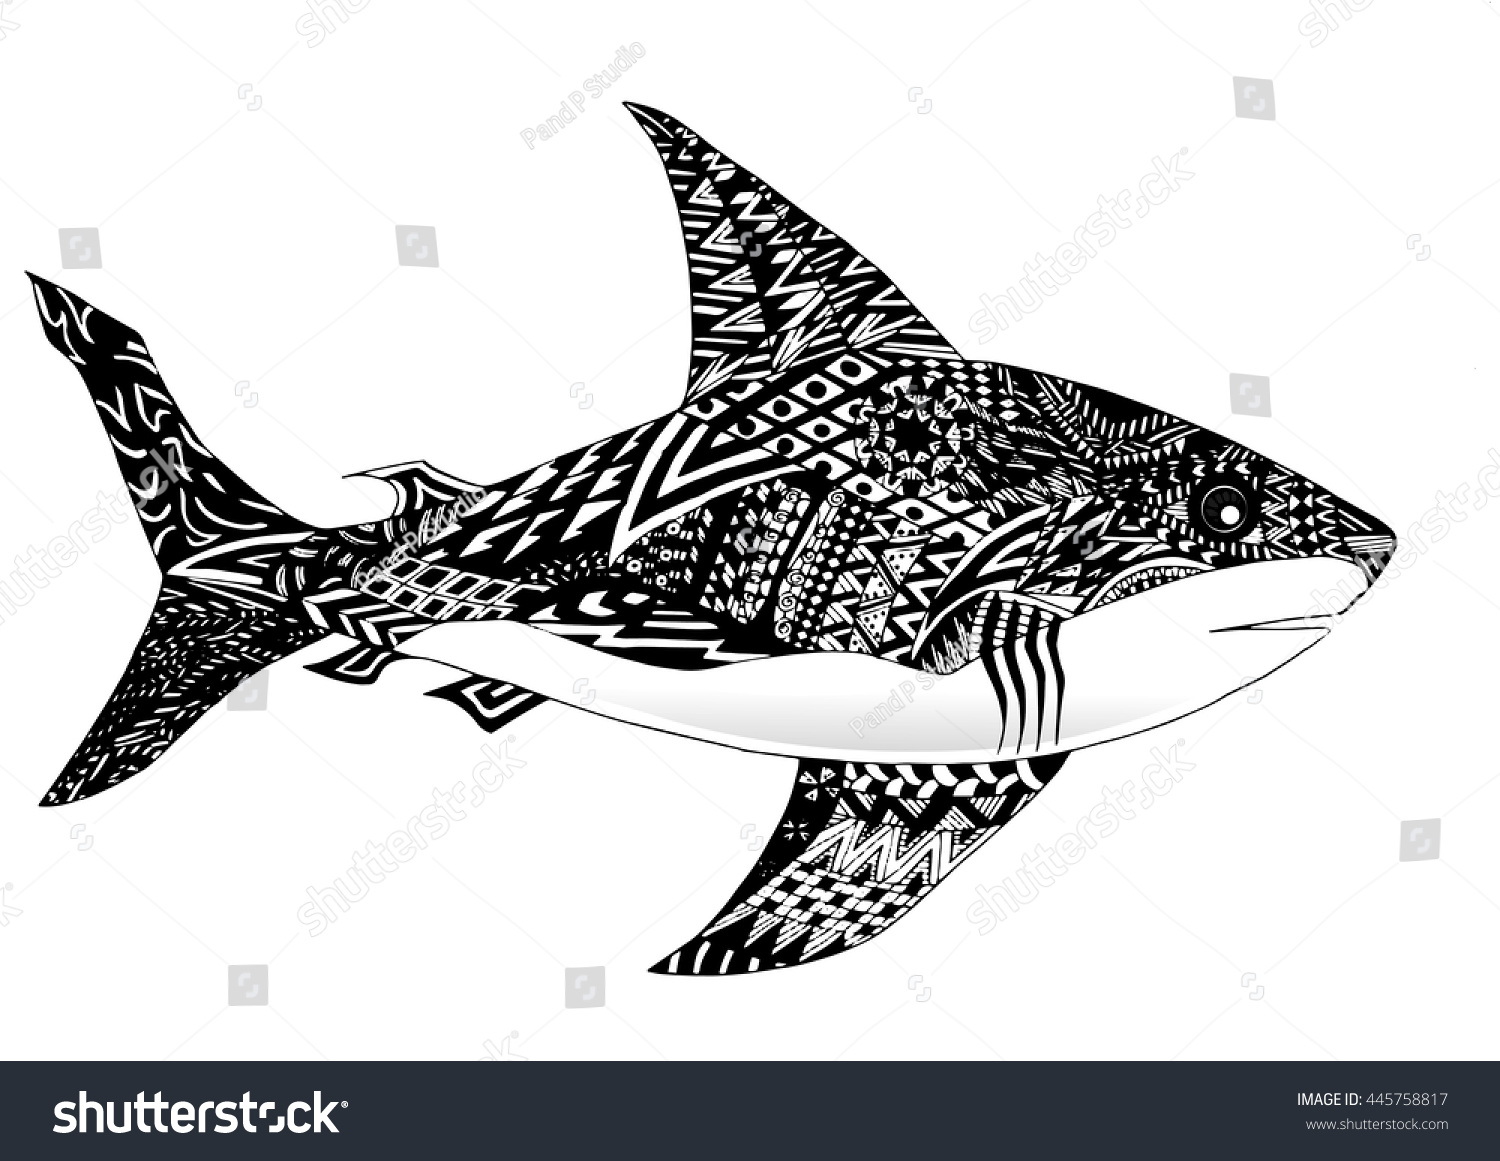 Stock vector ethnic animal doodle detail pattern killer whale - Zentangle Style Shark Illustration In Doodle Style Vector Monochrome Sketch With High Details Isolated On